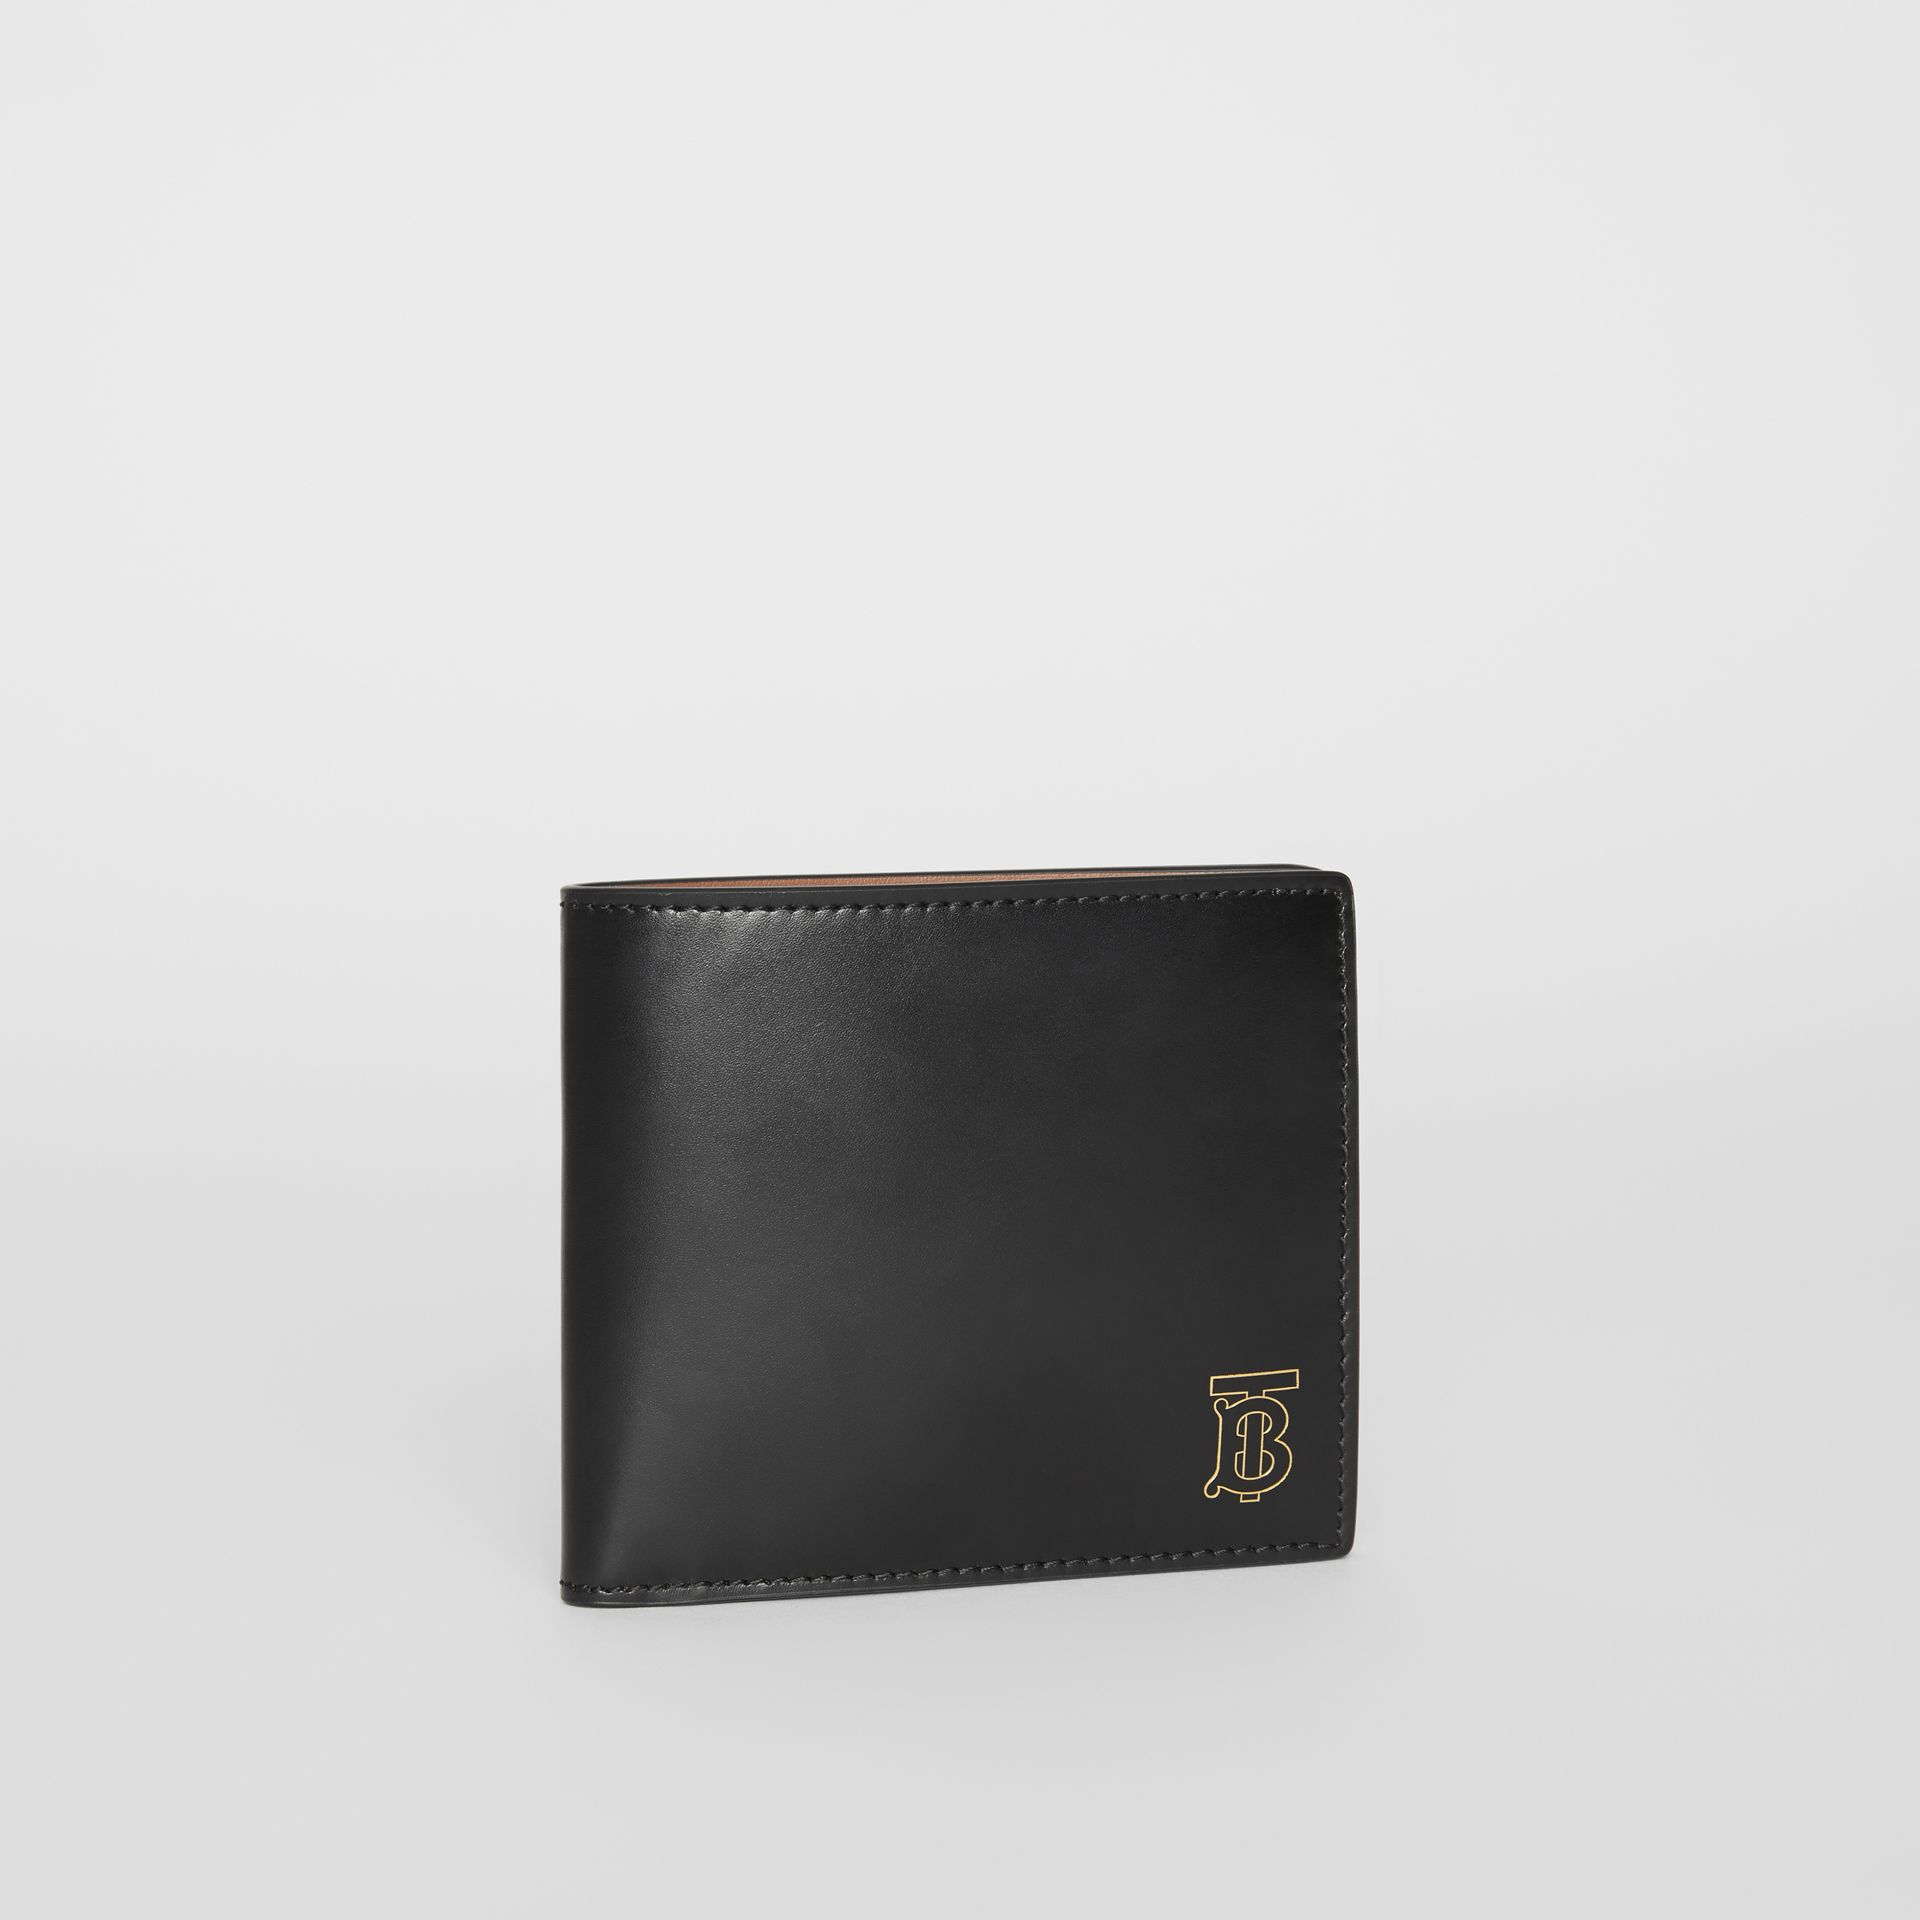 Monogram Motif Leather International Bifold Wallet in Black - Men | Burberry United Kingdom - gallery image 3